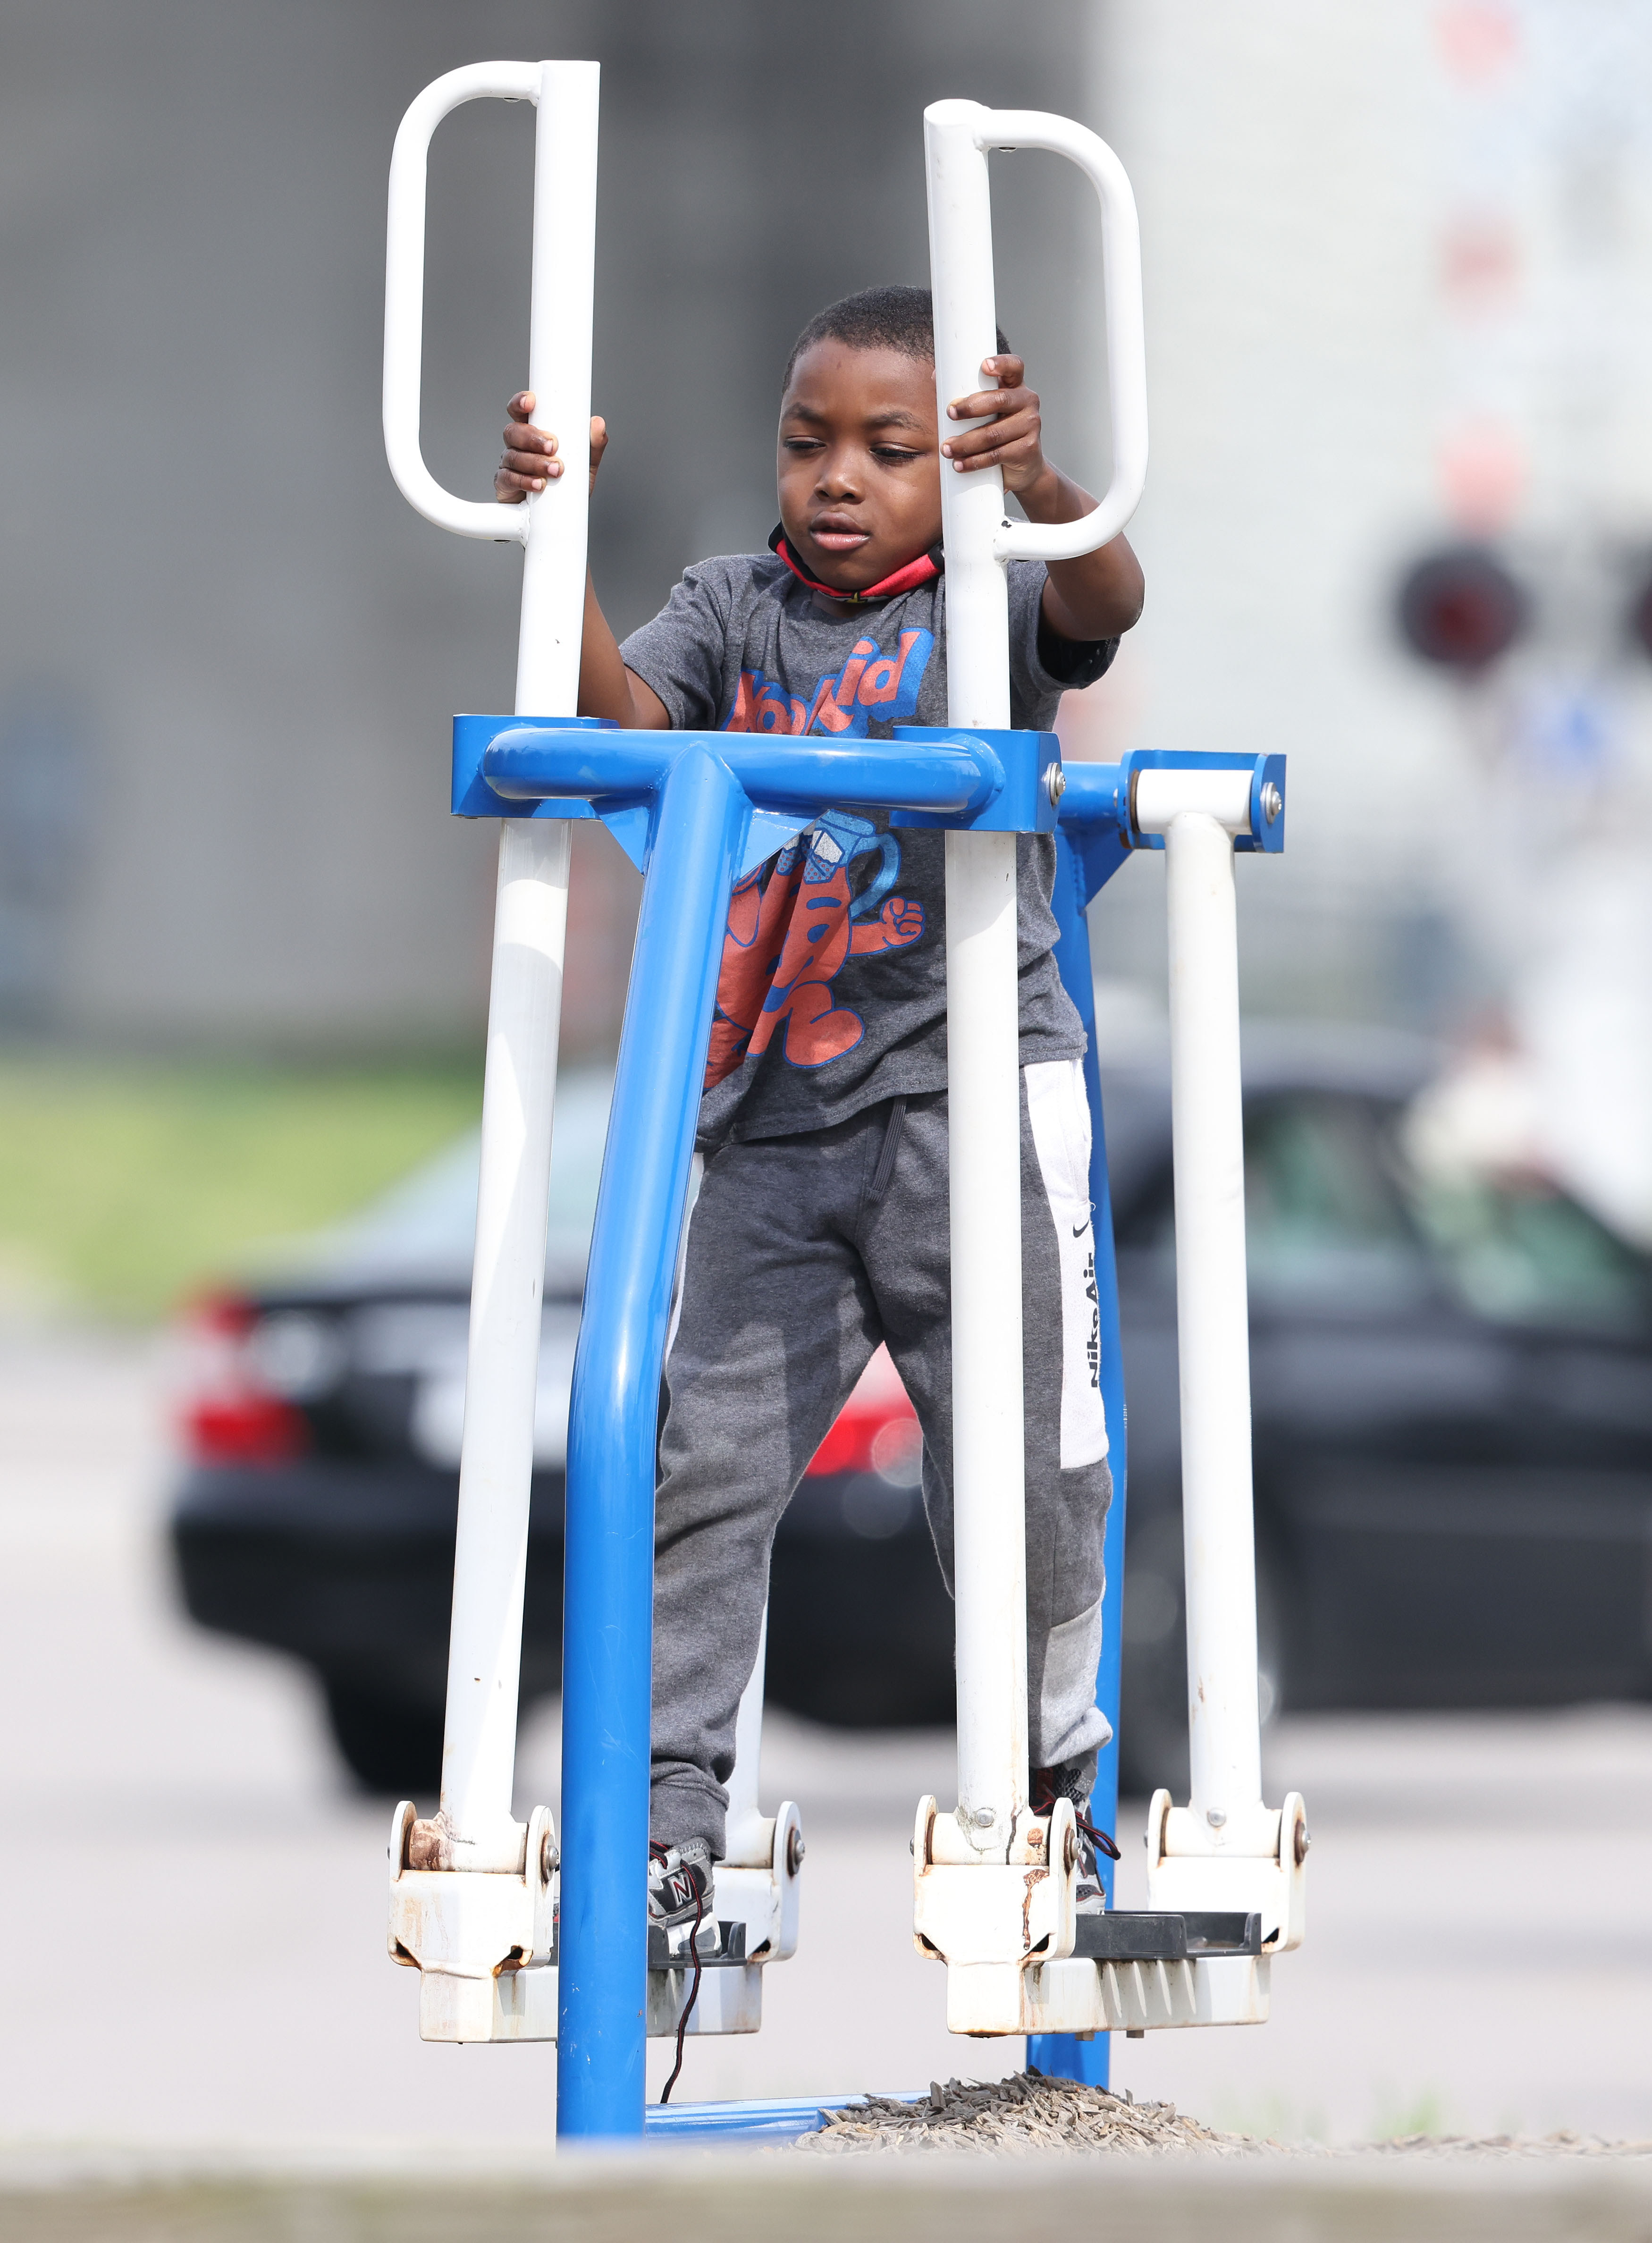 Young man on exercise equipment